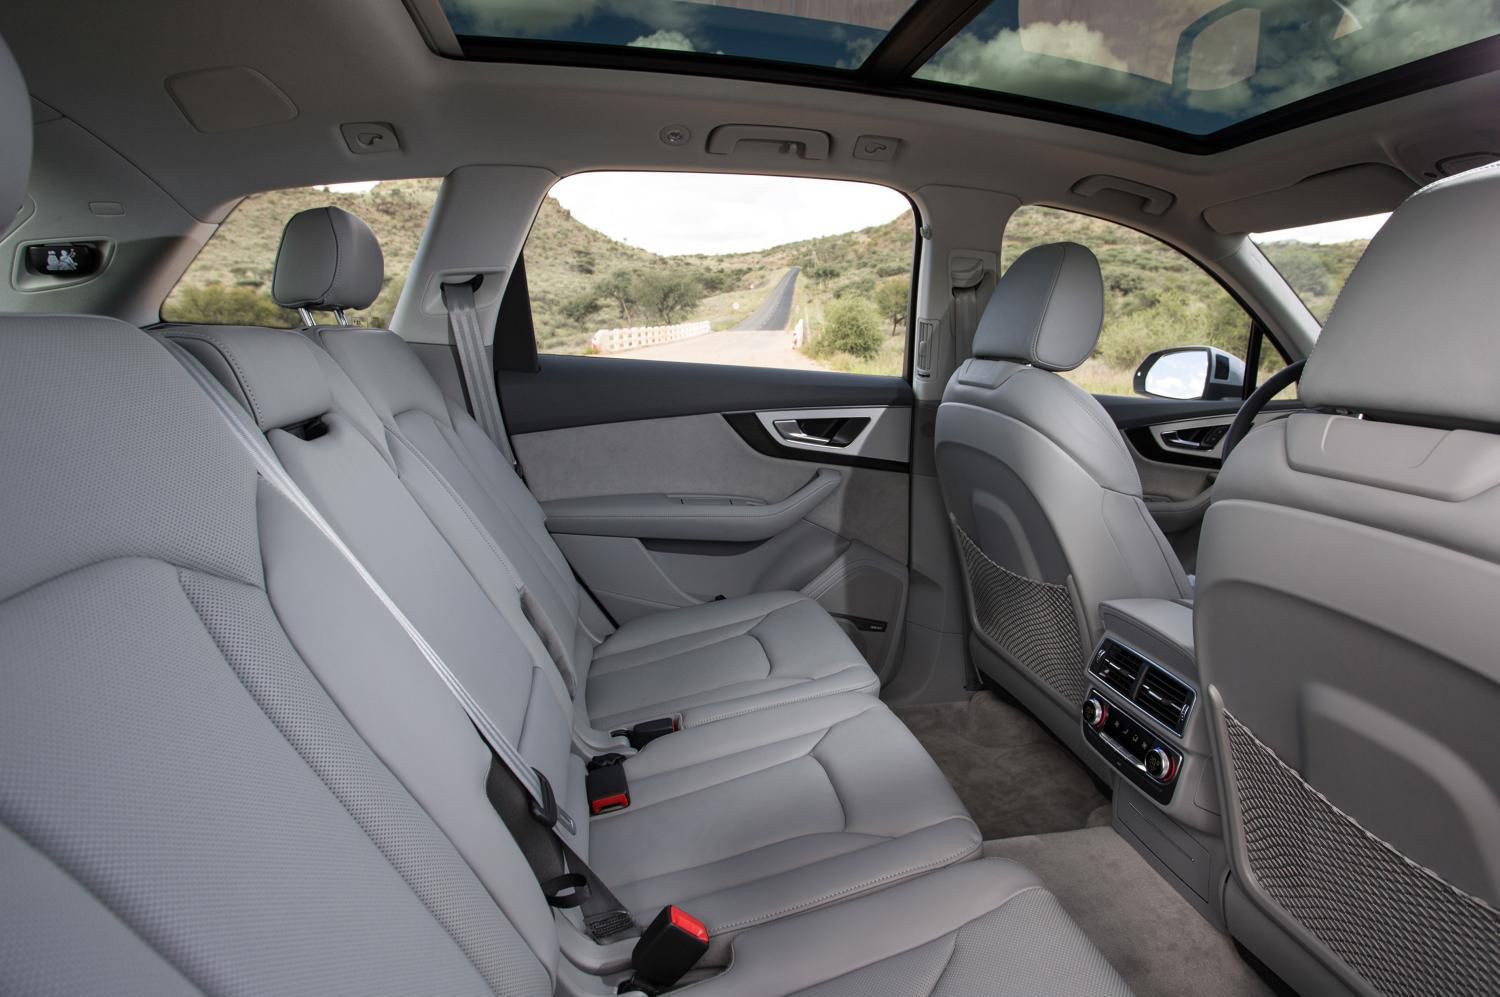 Second row of cream leather and fabric seats in Audi Q7.